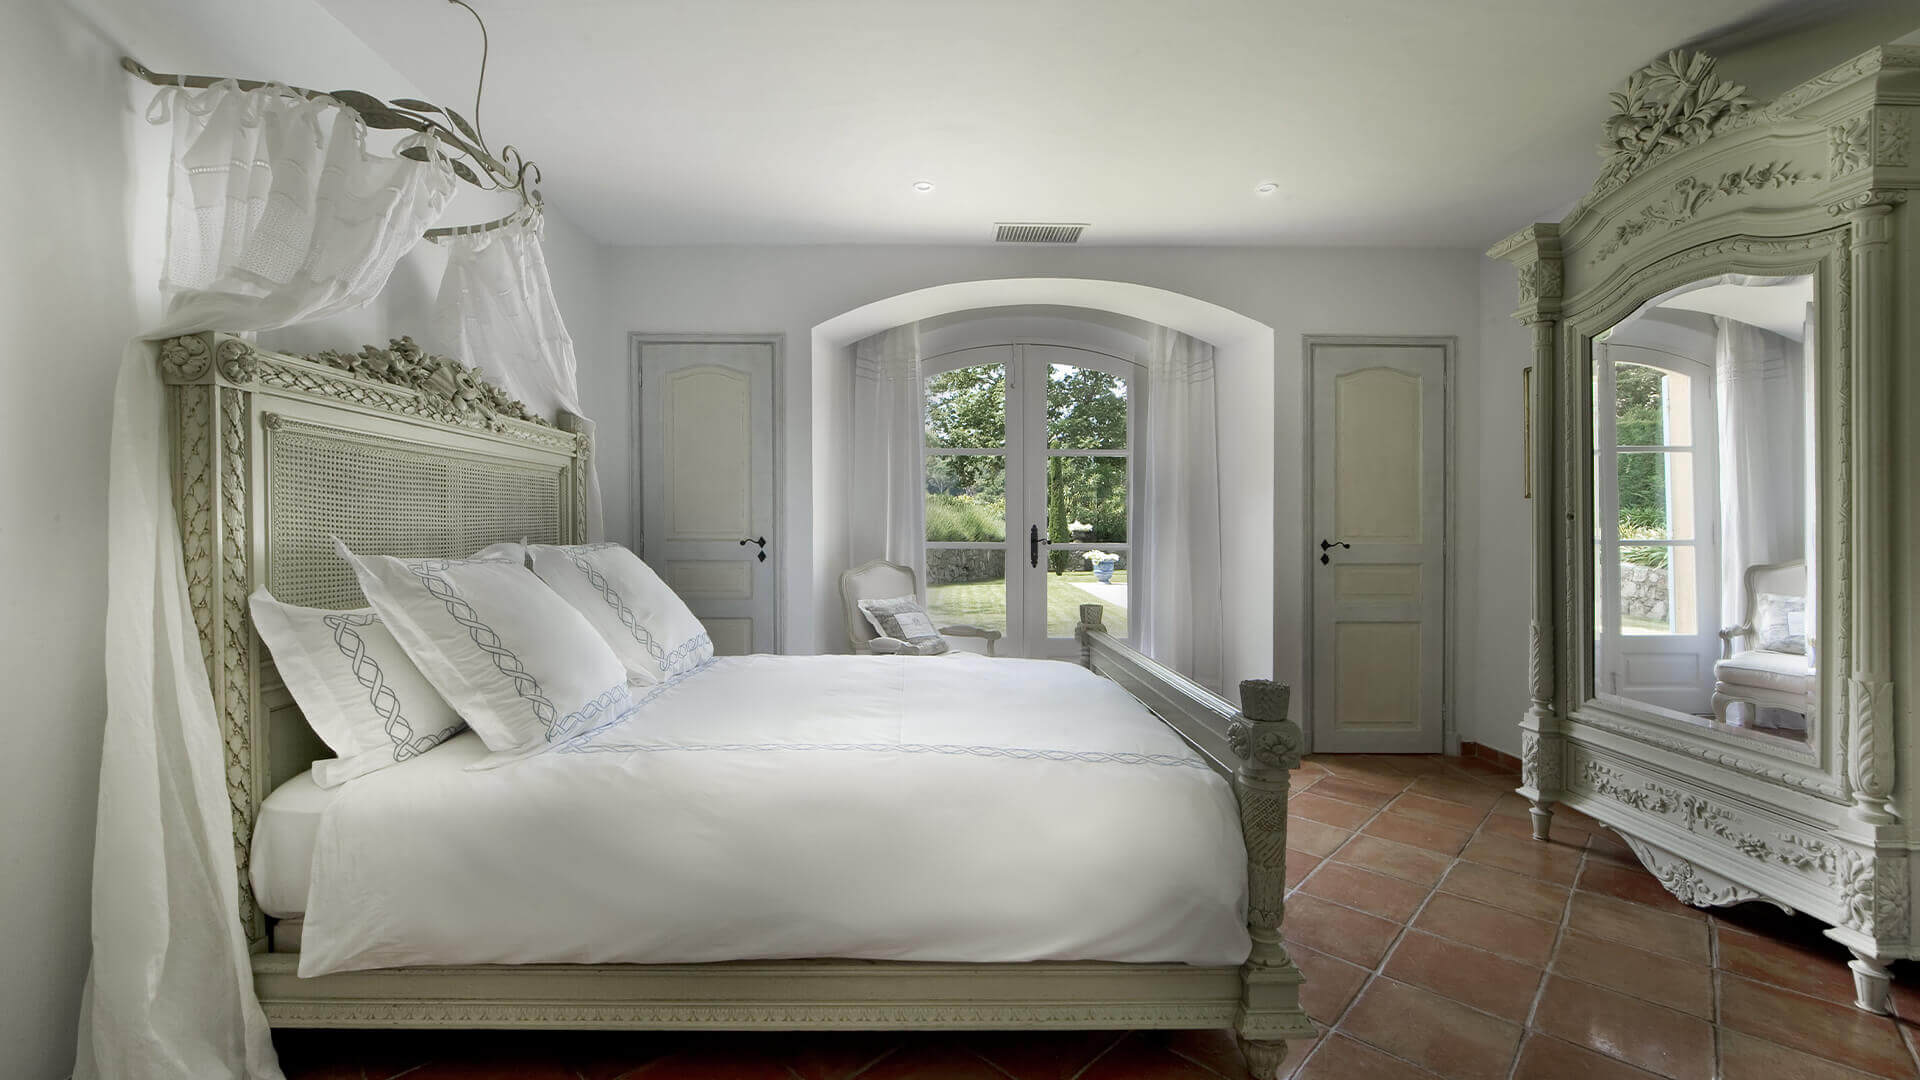 Saint Tropez Villa white renaissance style bedroom and garden view